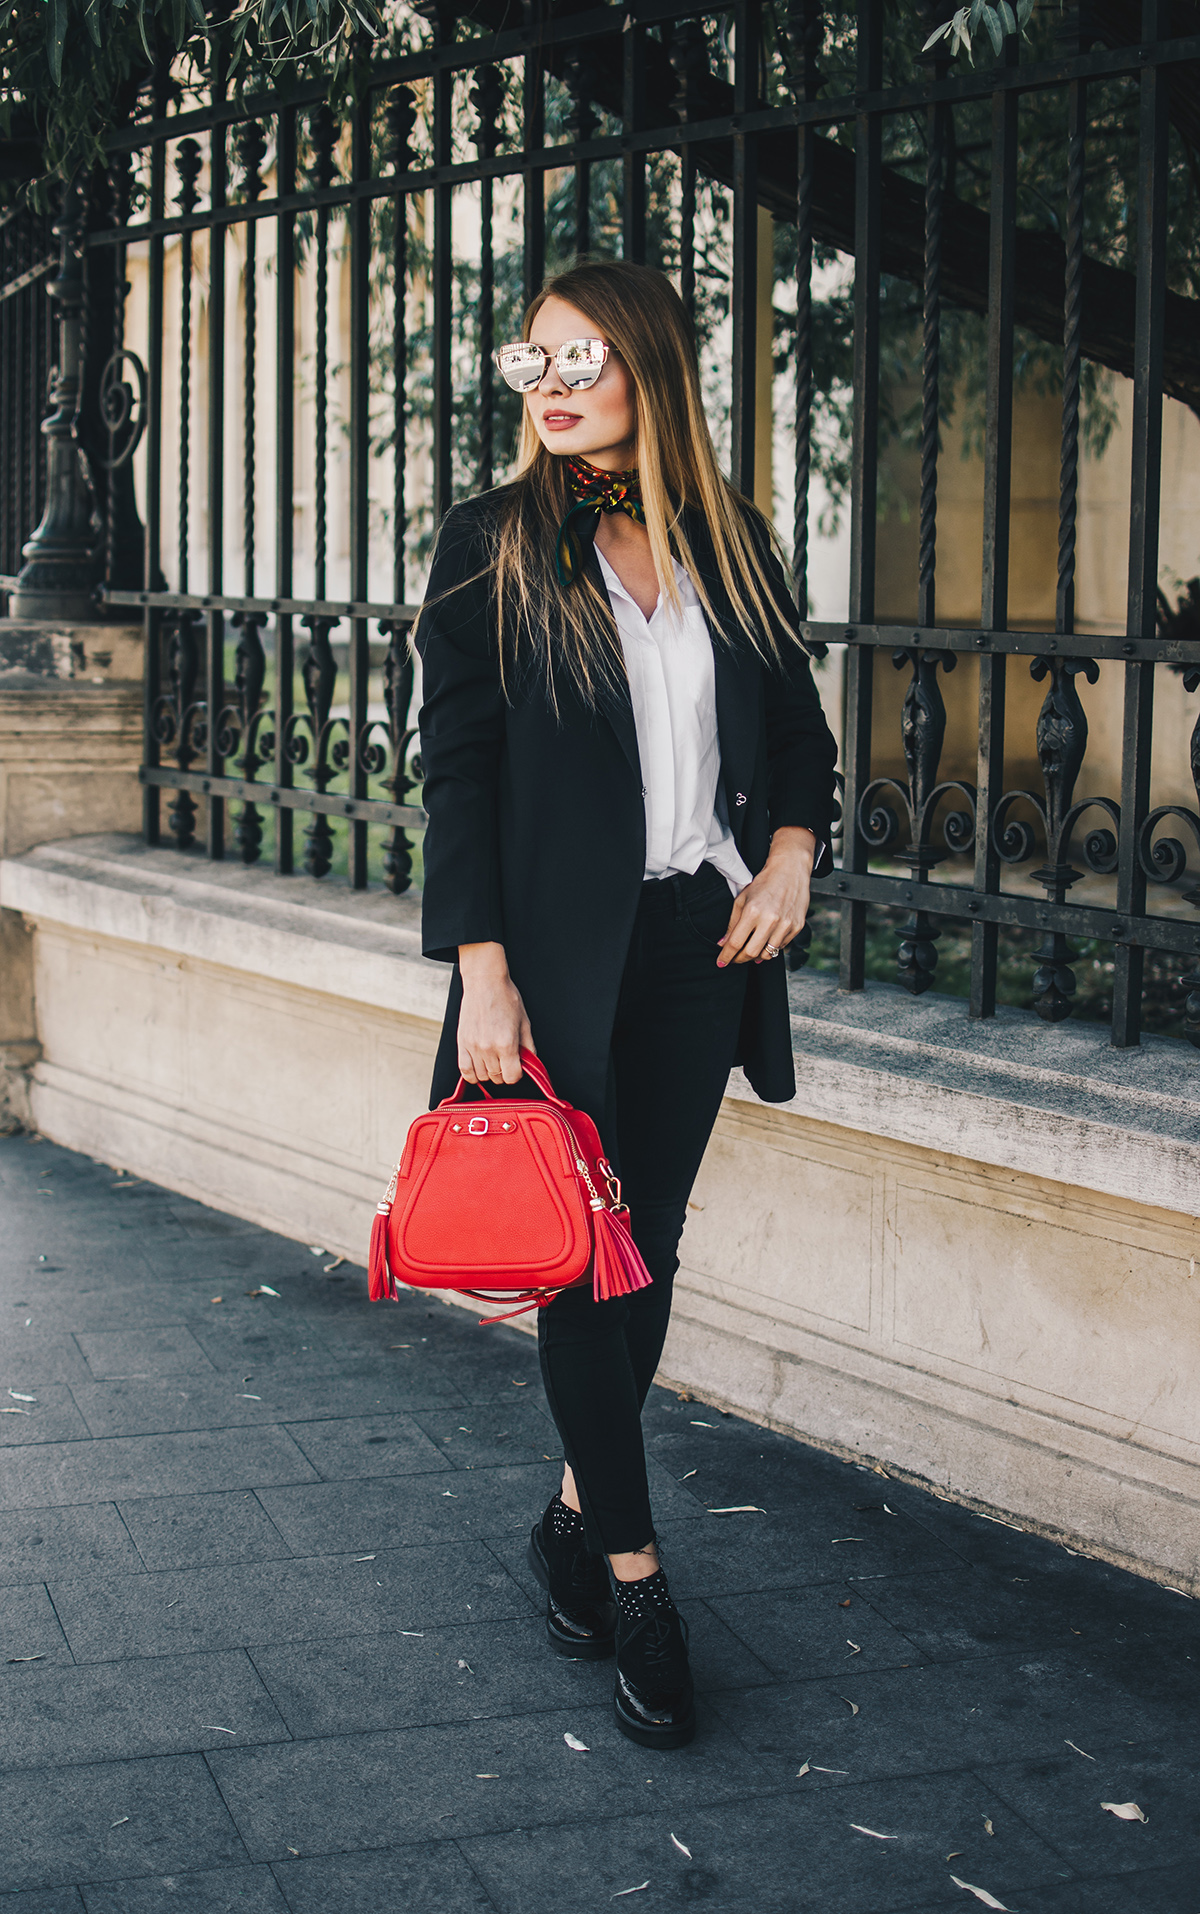 black-and-white-outfit-zerouv-sunglasses-red-bag-vintage-scarf-3